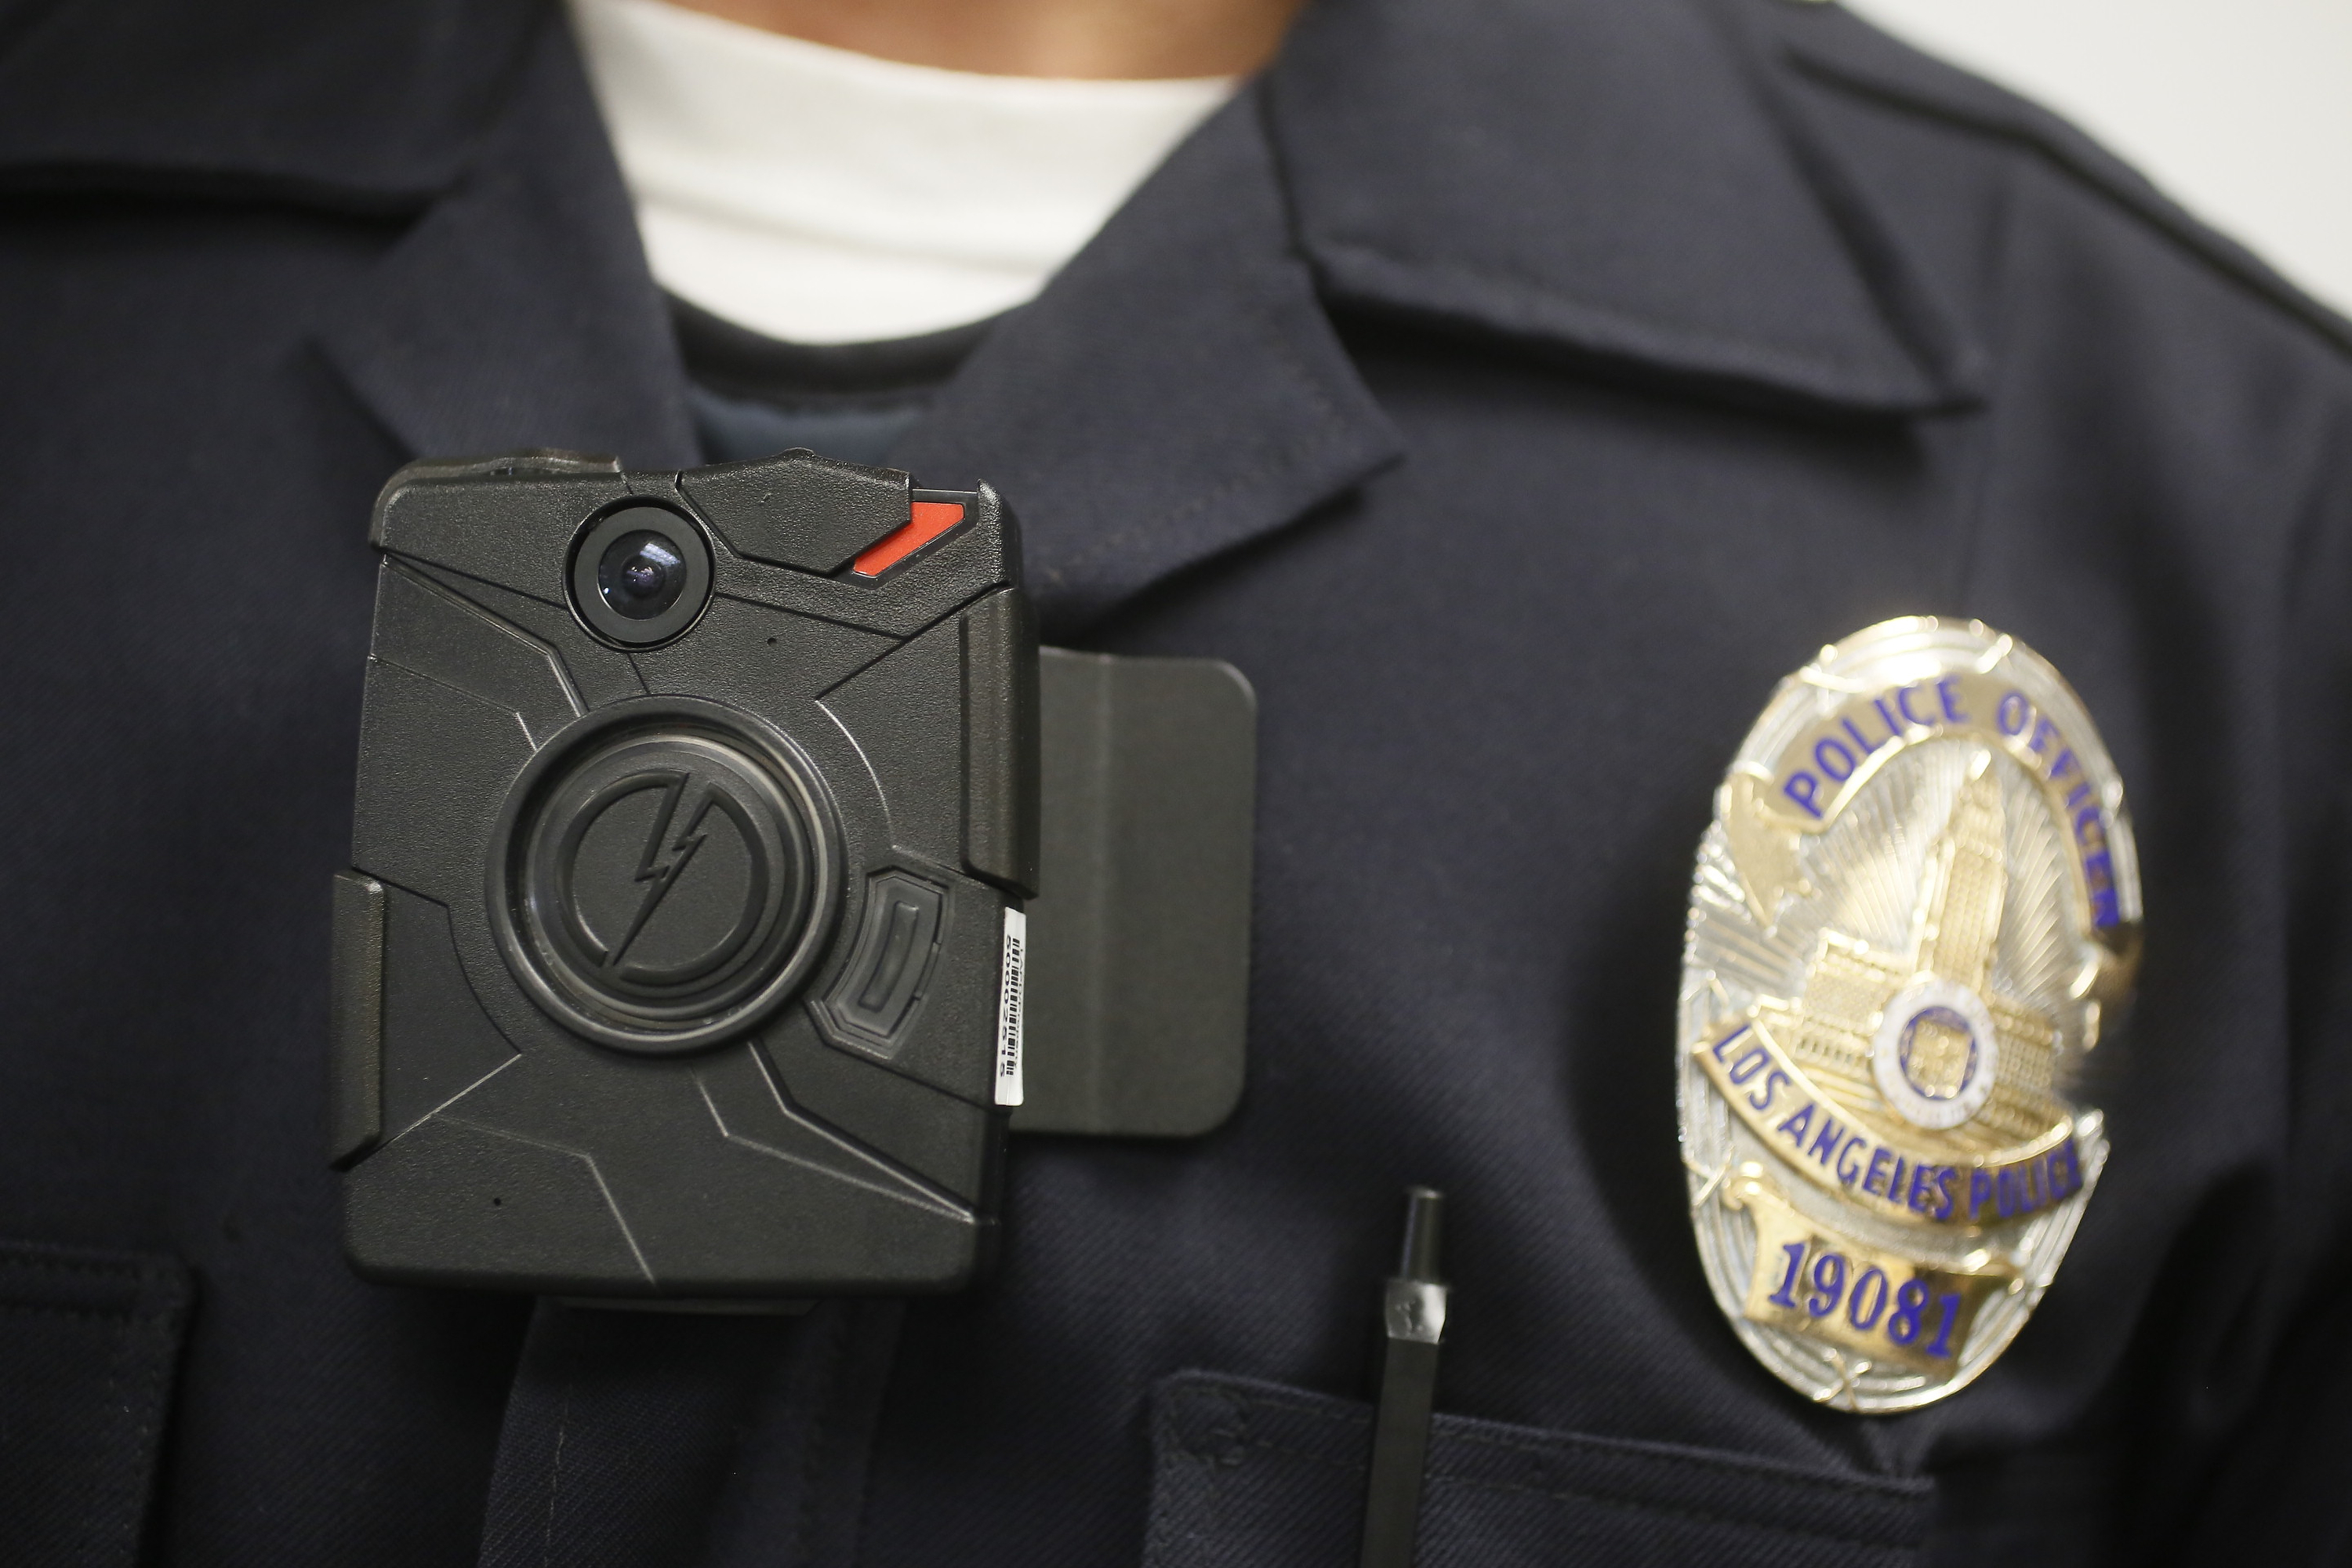 Policies take shape for use of police body cameras in Md.